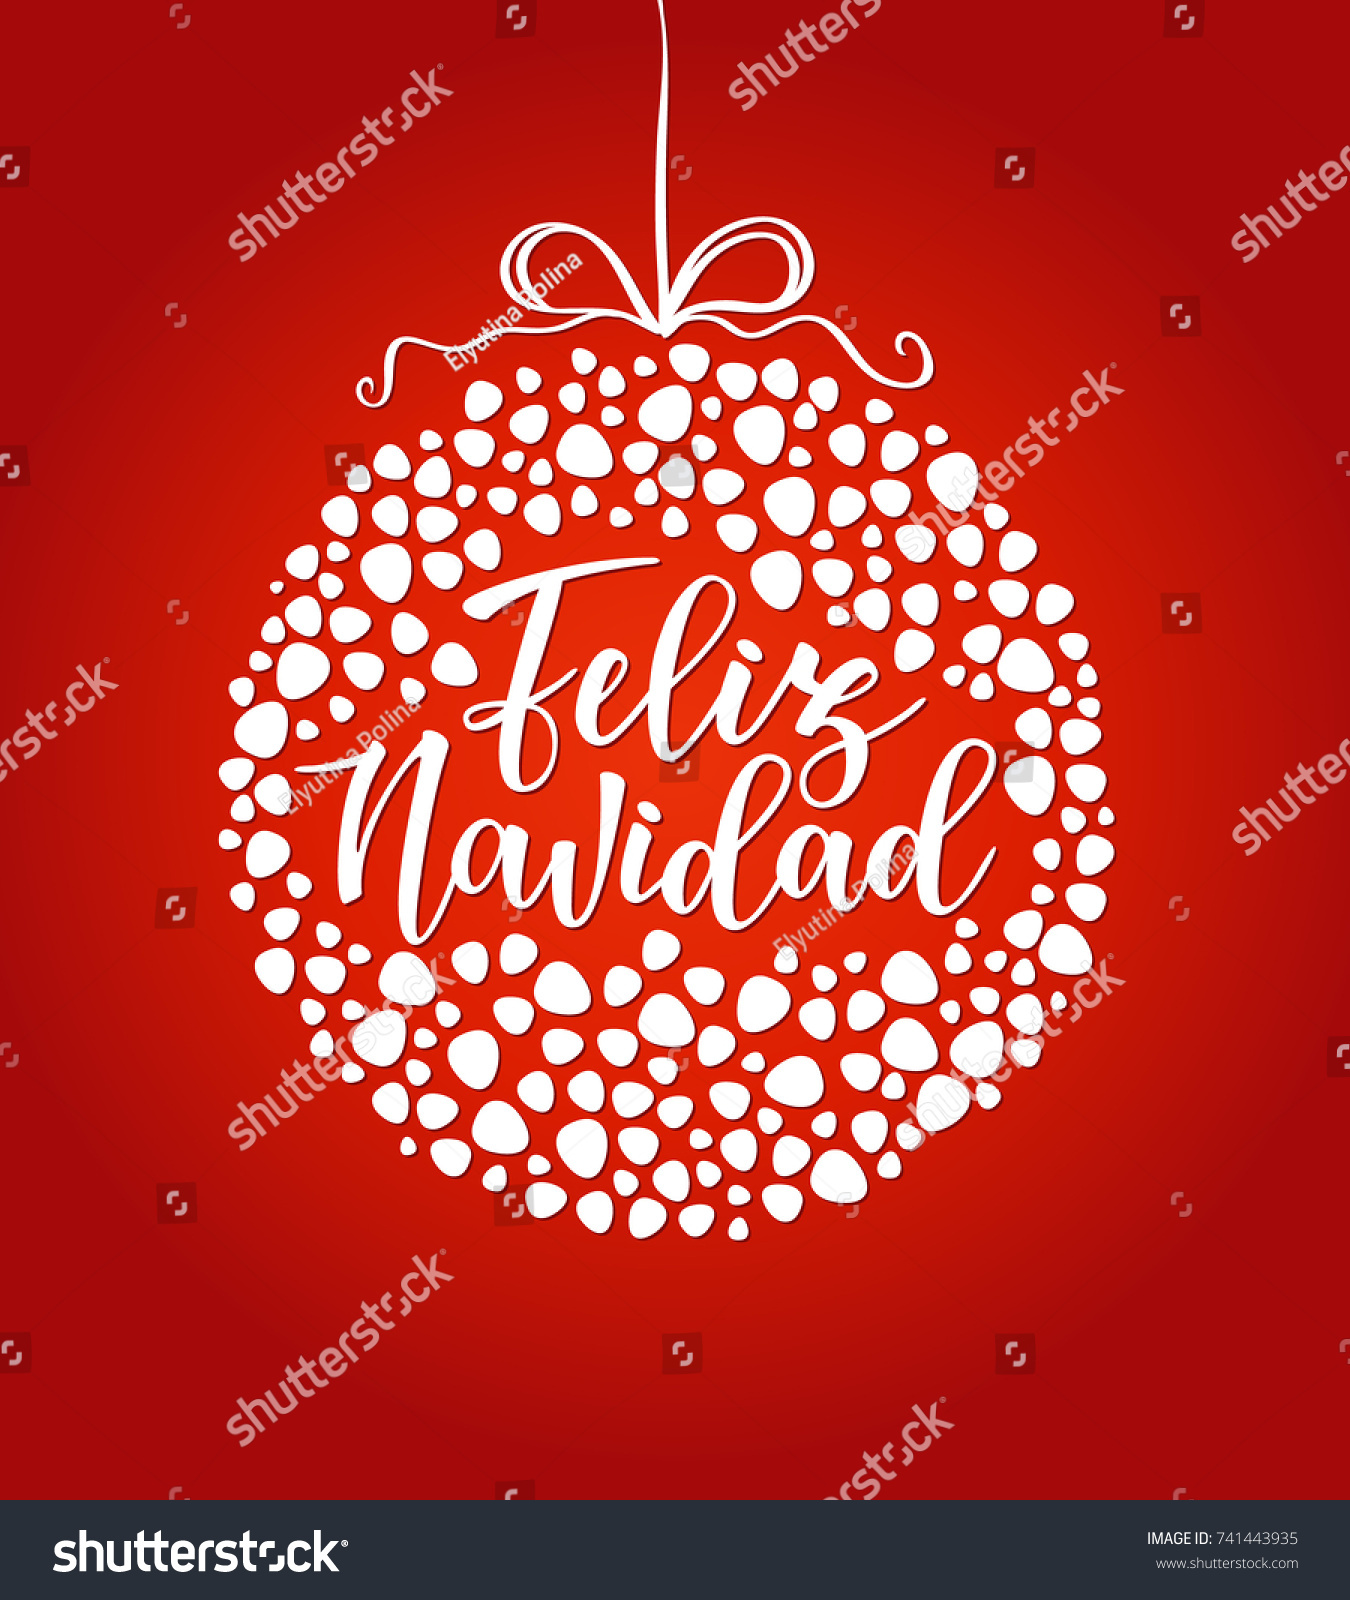 feliz navidad spanish typography lettering red background holiday greetings spanish quote isolated